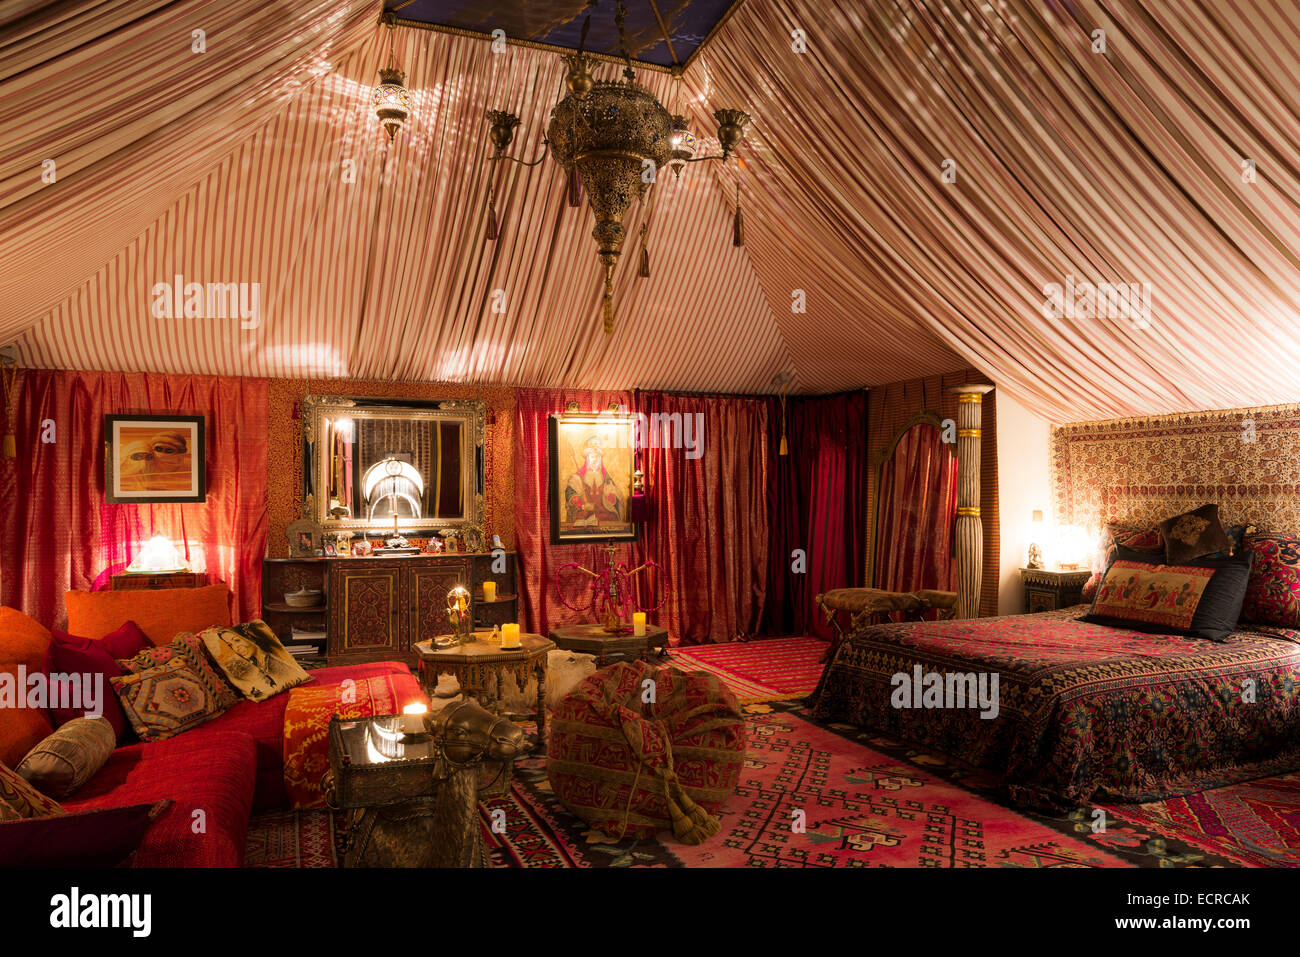 Tent style boudoir bedroom with Moroccan rugs oriental